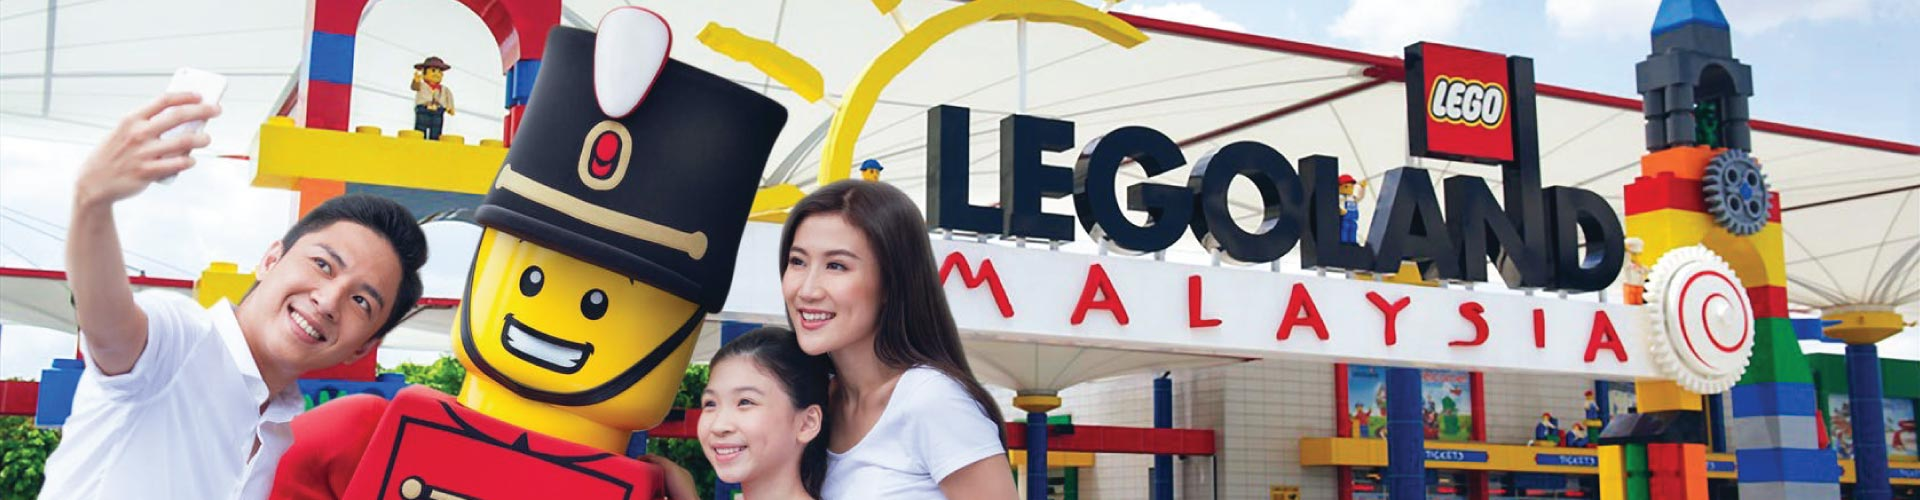 Legoland Staycation + Play Combo Package